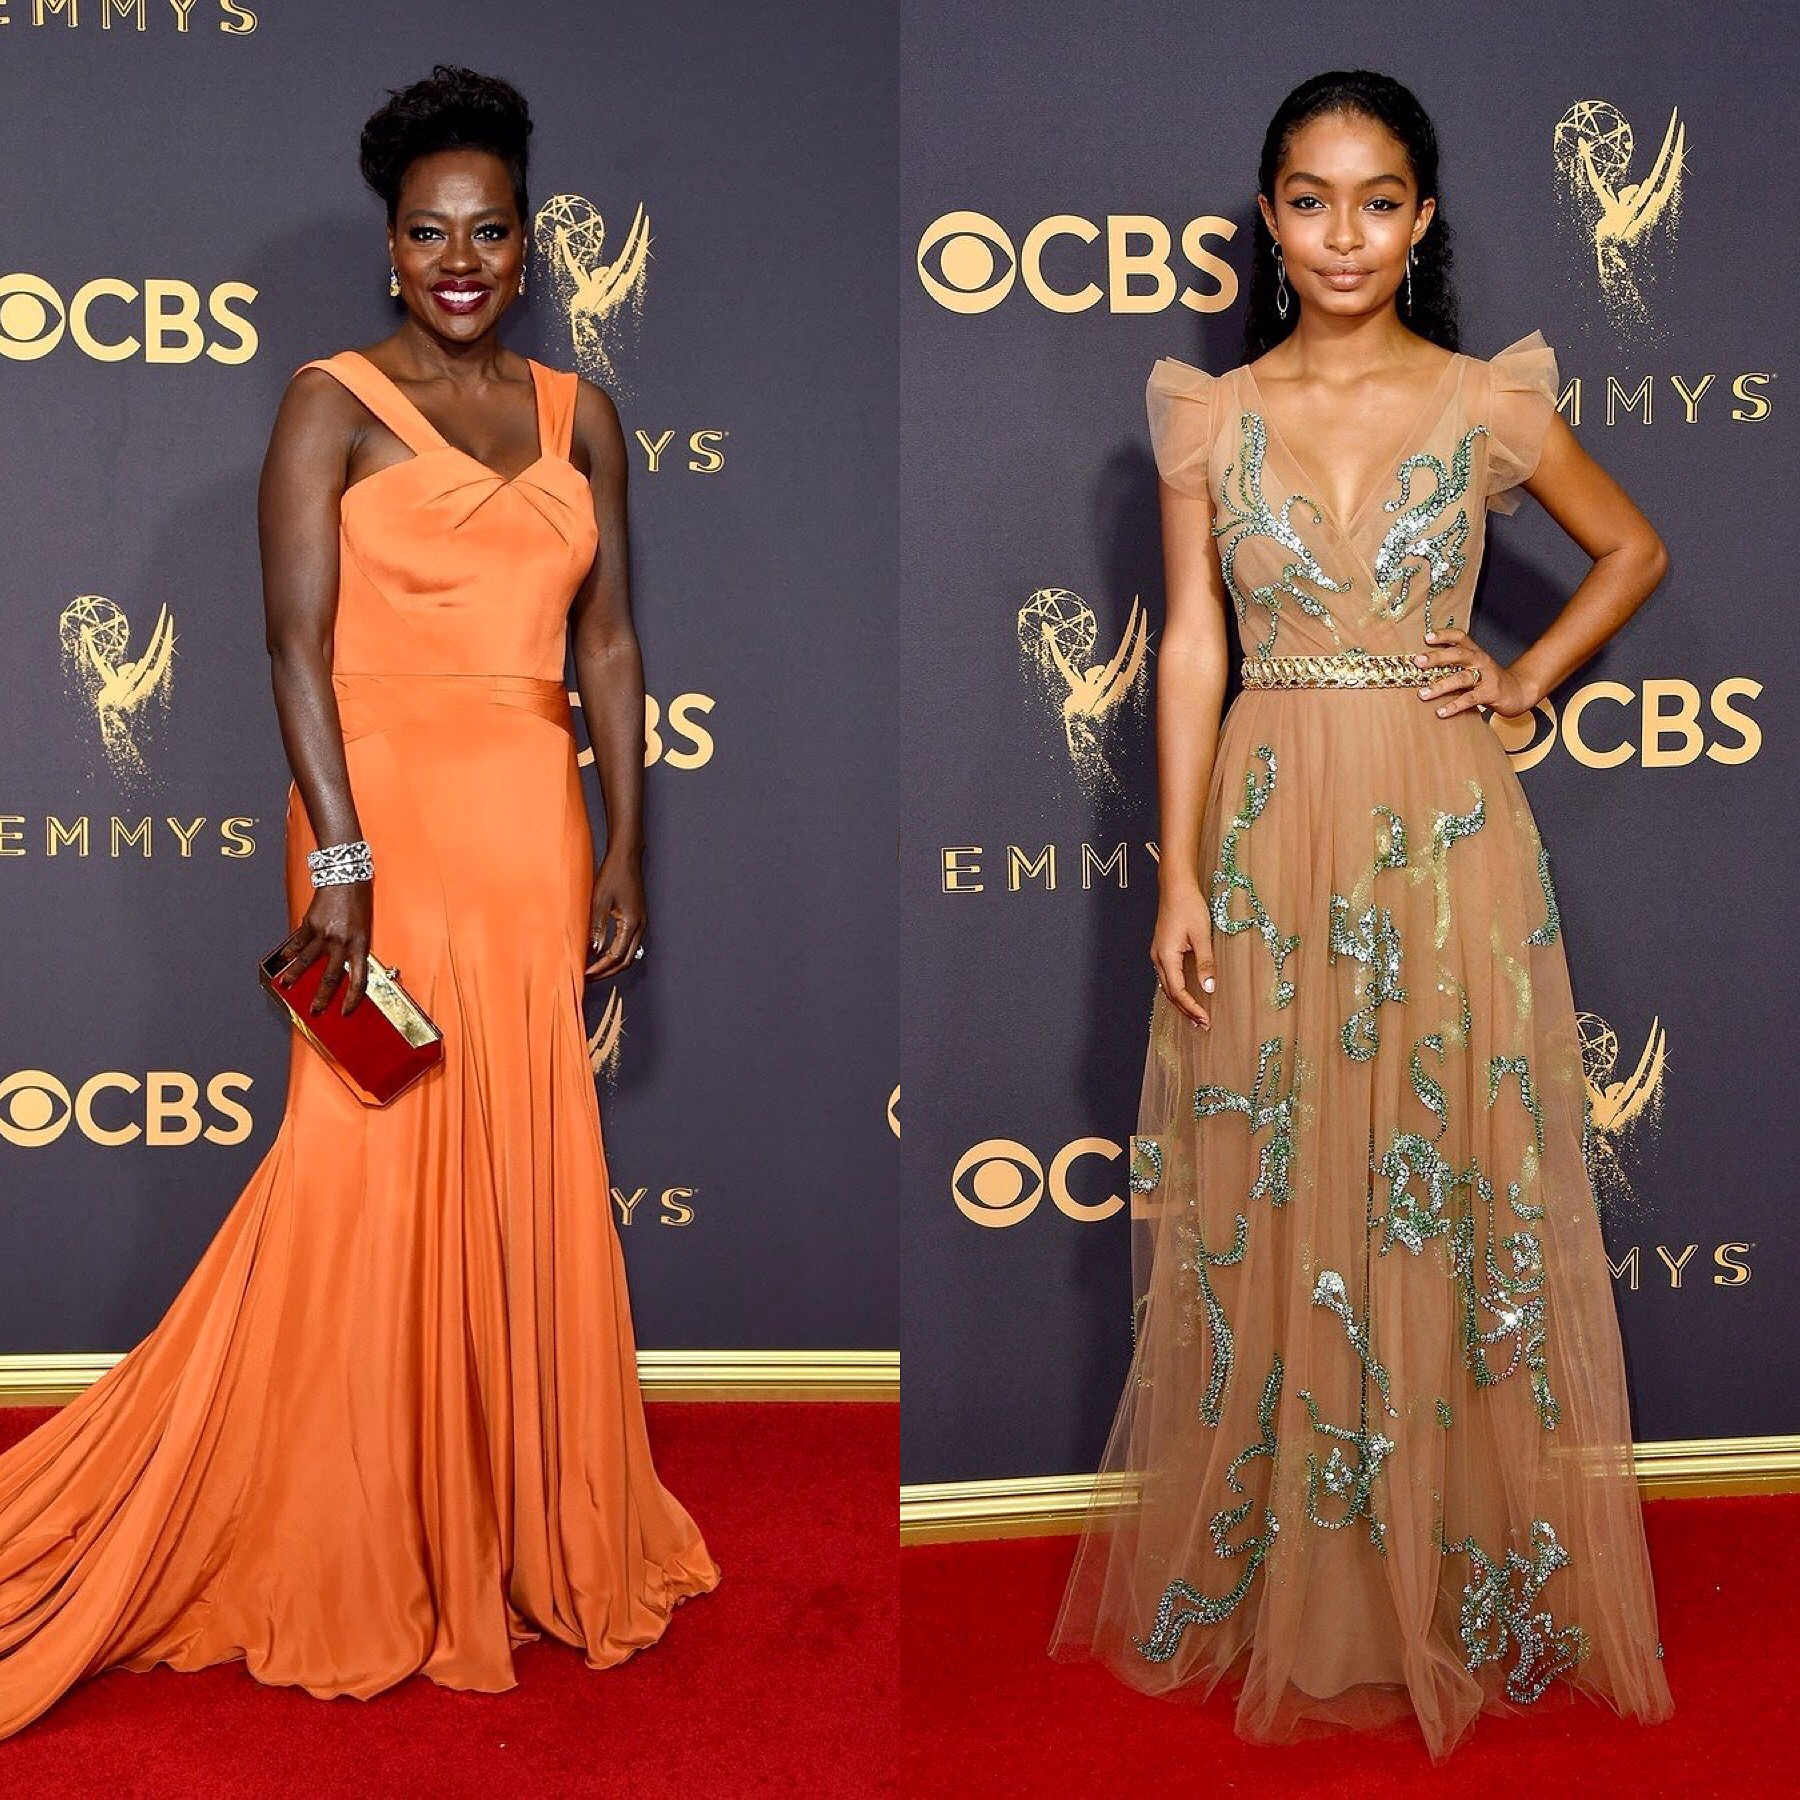 ALL THE LOOKS FROM THE 2017 EMMY AWARDS